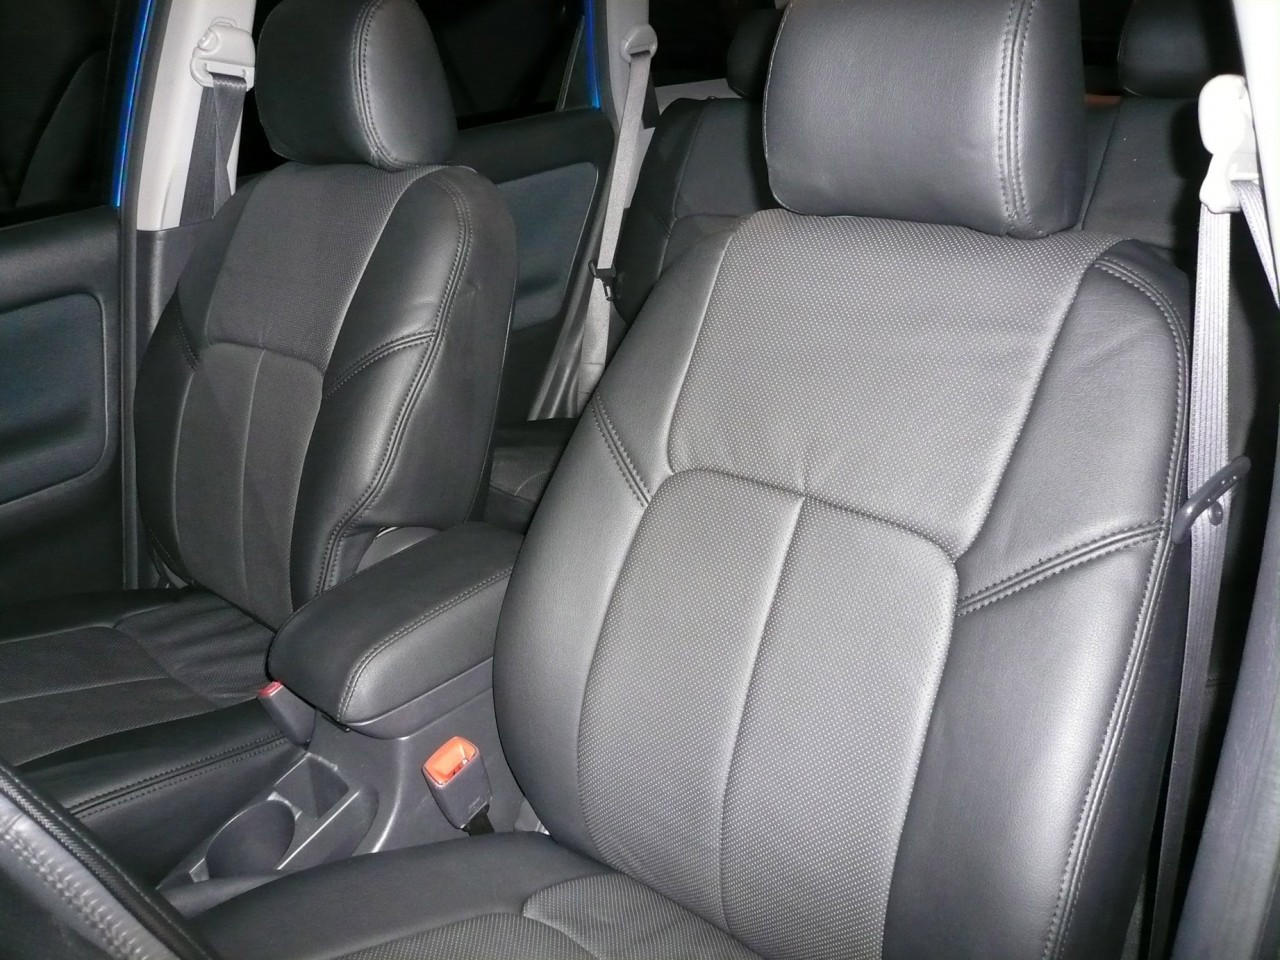 Bean garage clazzio seat covers for toyota matrix 2005 2008 for Garage seat nevers